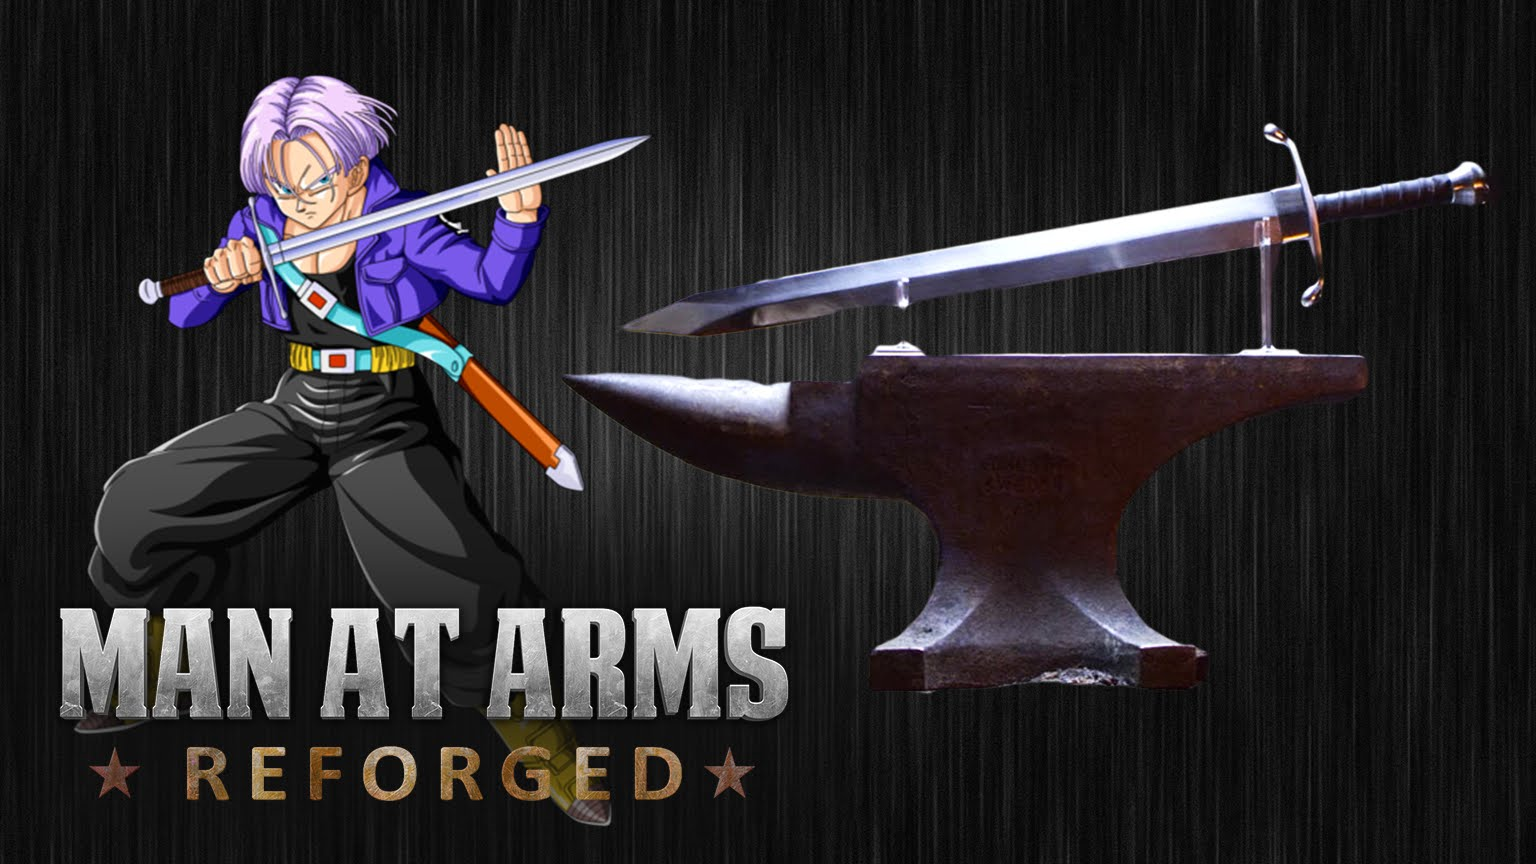 men at arms reforged creates trunks sword from dragon